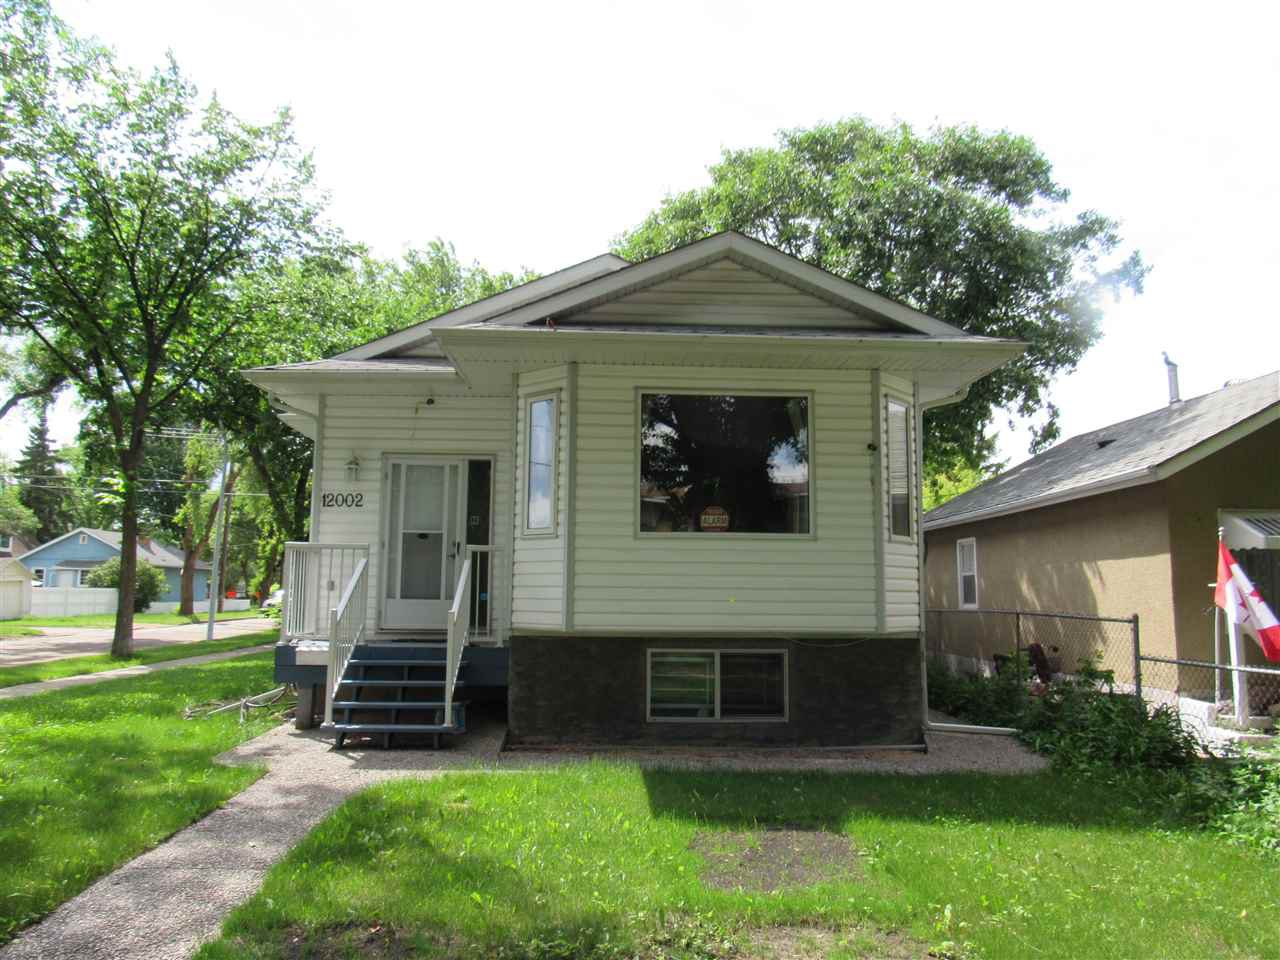 Main Photo: 12002 91 Street in Edmonton: Zone 05 House for sale : MLS®# E4170407